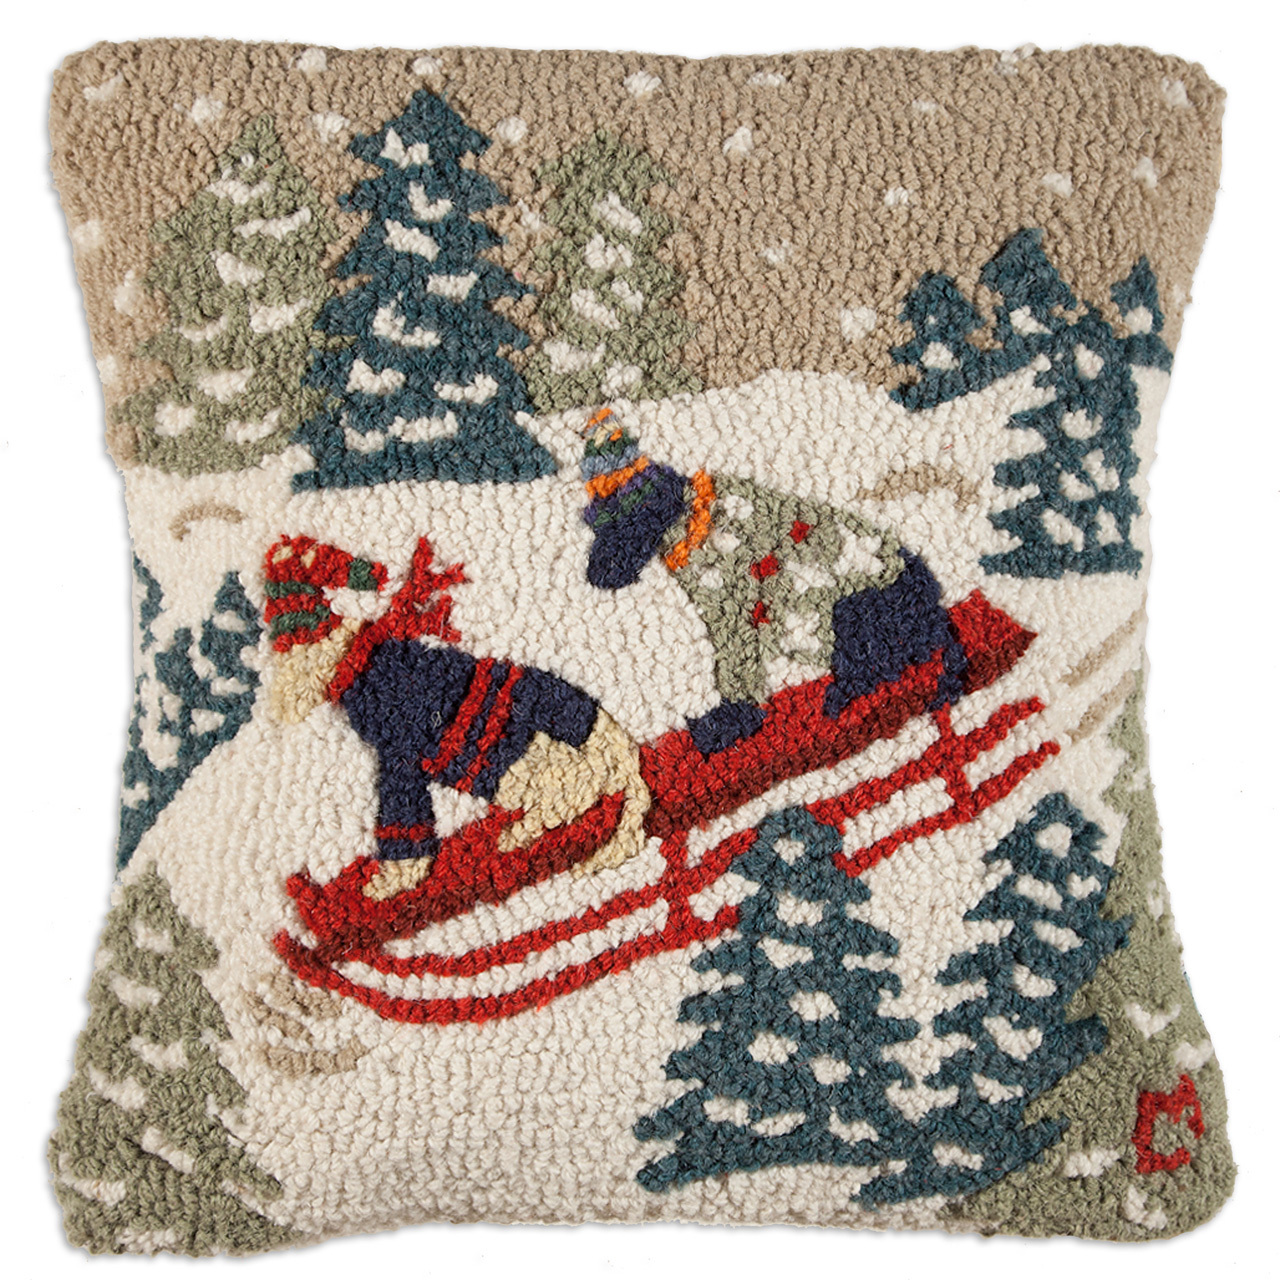 "Daring Dogs 18"" Wool Hooked Pillow"